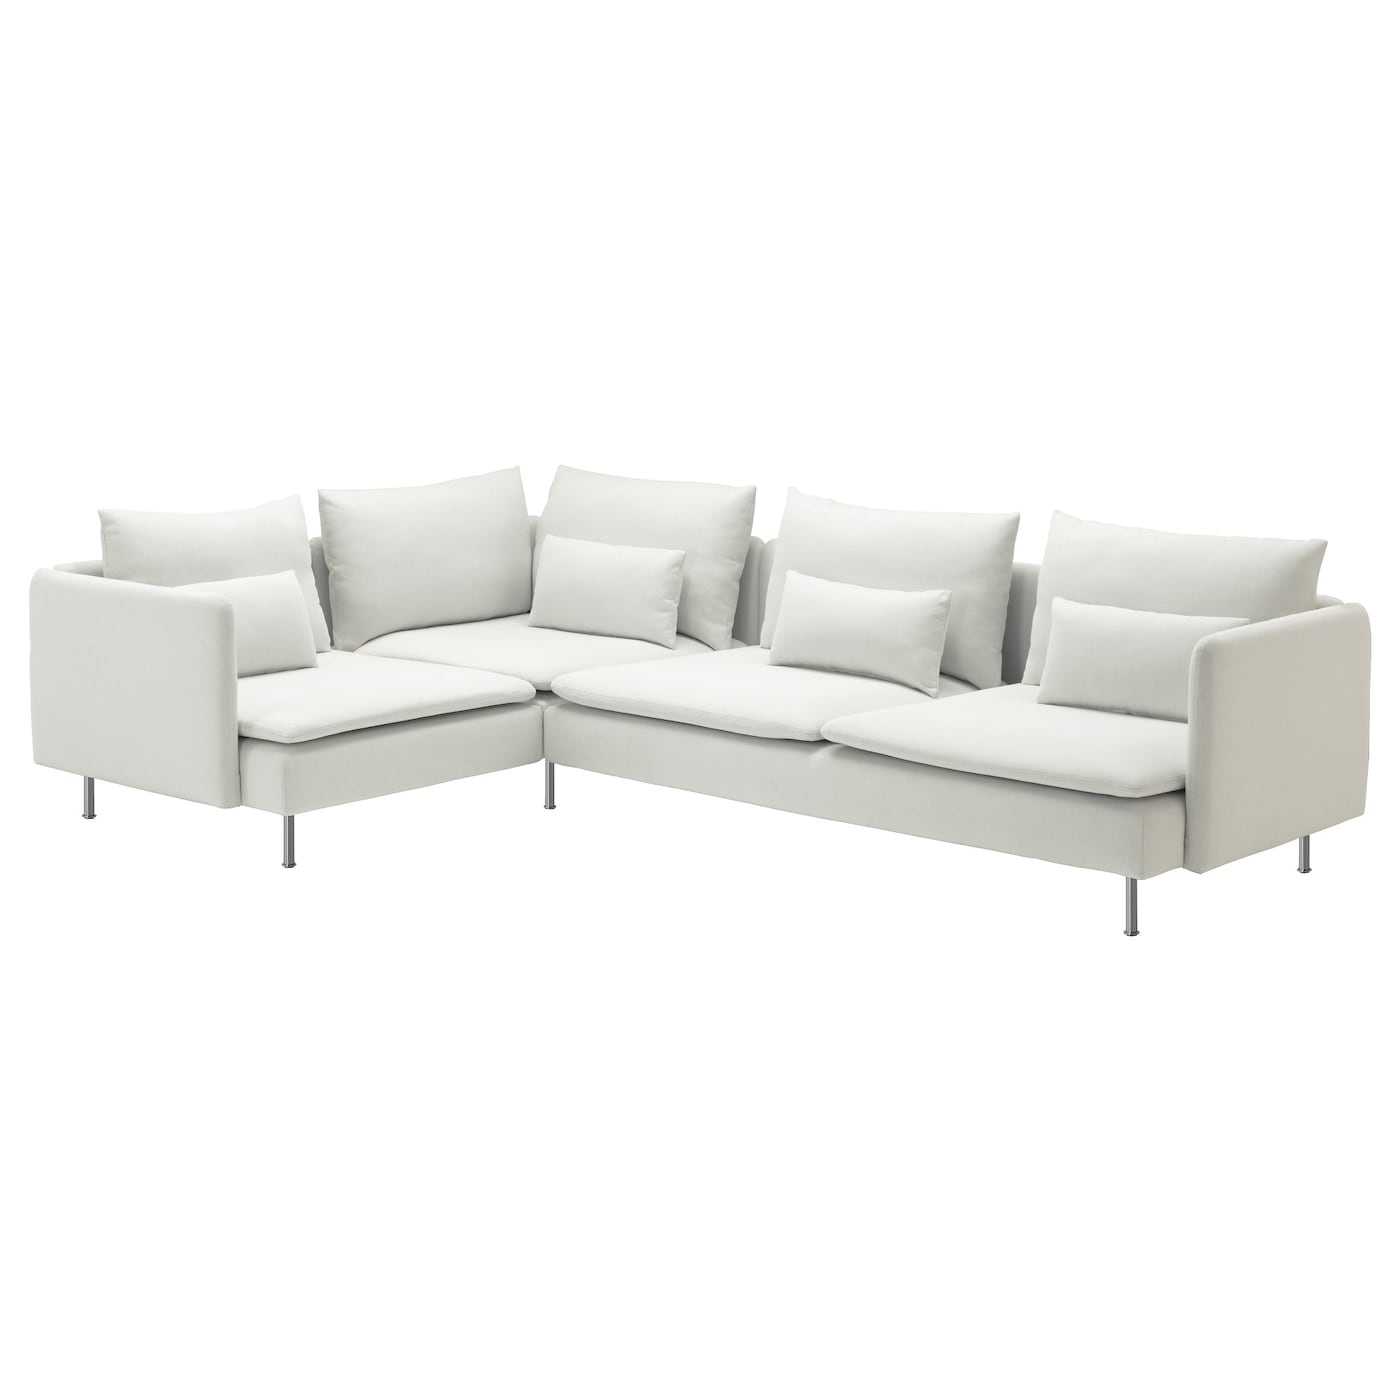 Ikea White Leather Couch Sofas: Fabric Sofas